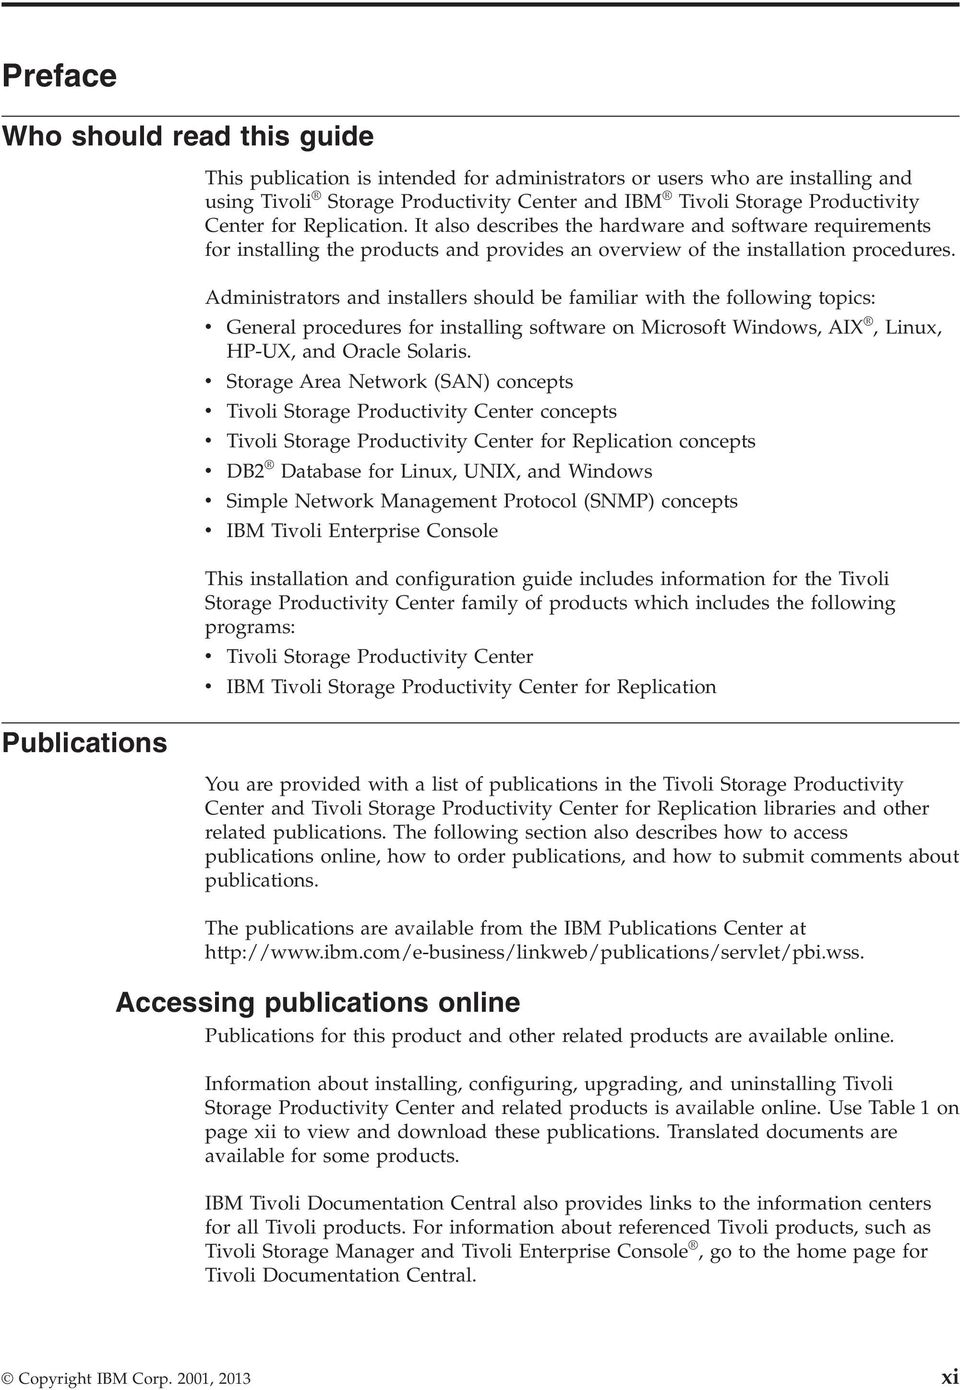 Installation and Configuration Guide - PDF